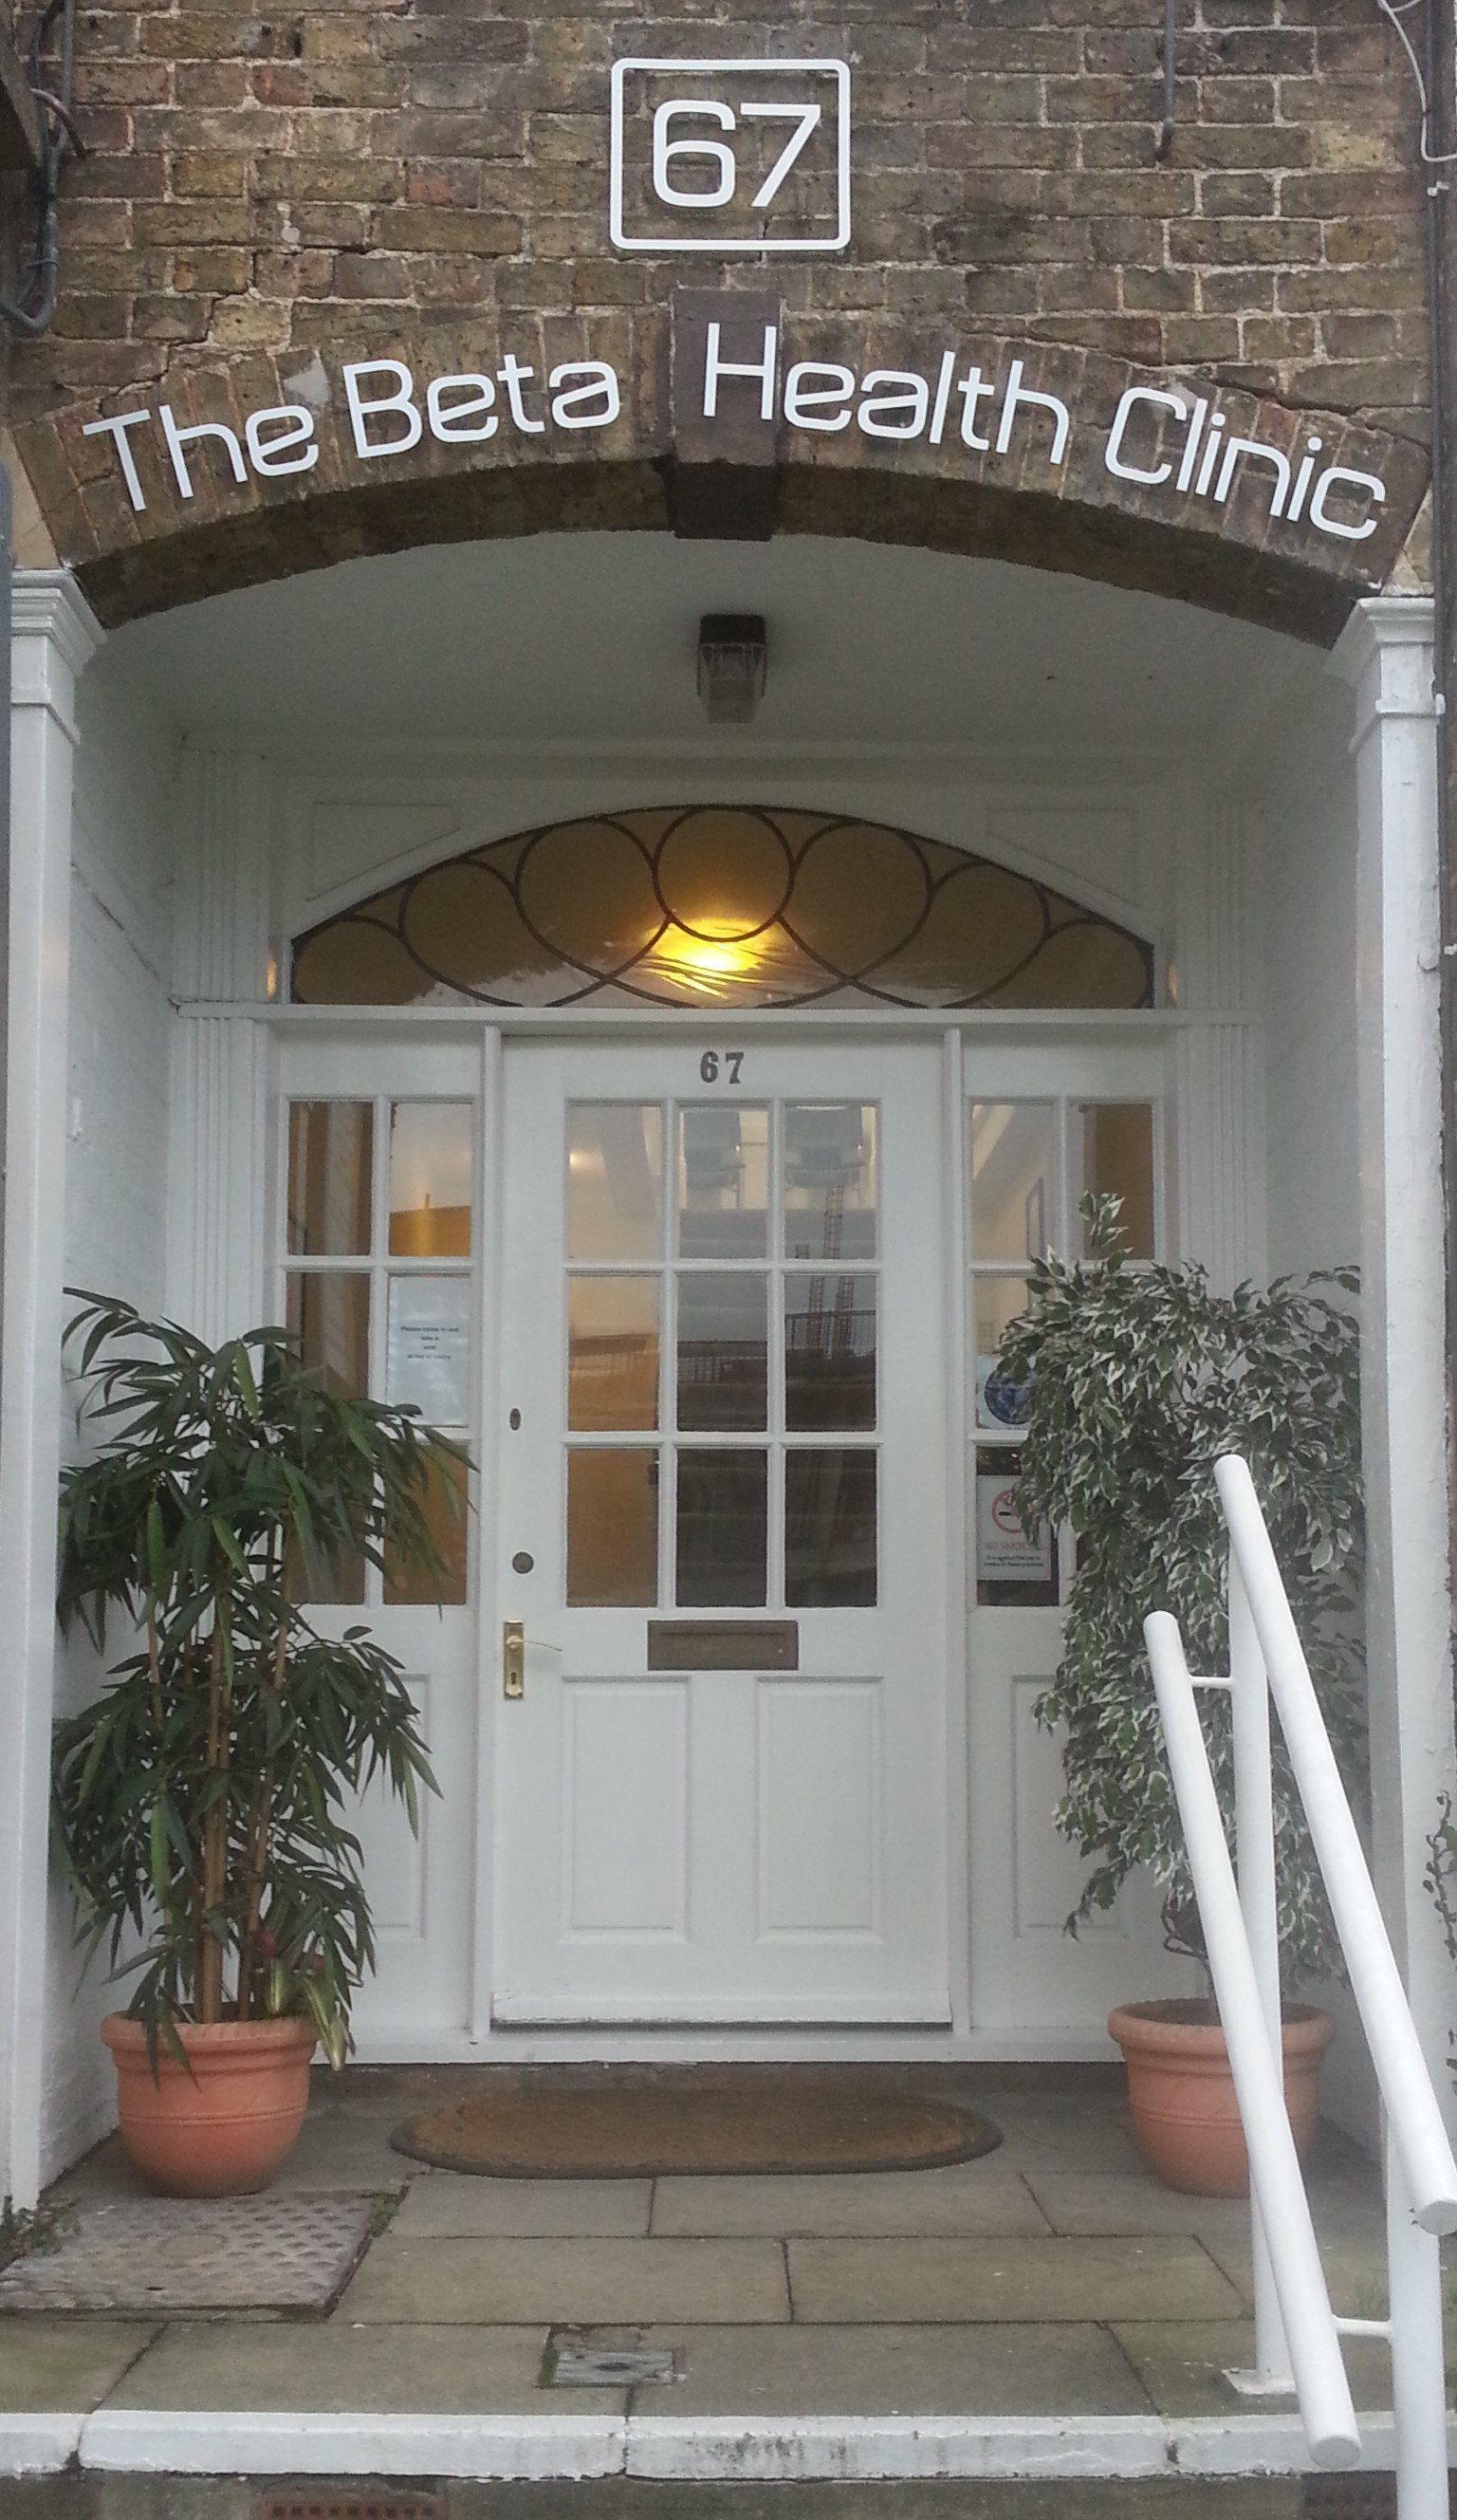 The entrance to our building with stone porch and white front door flanked by plants in tubs